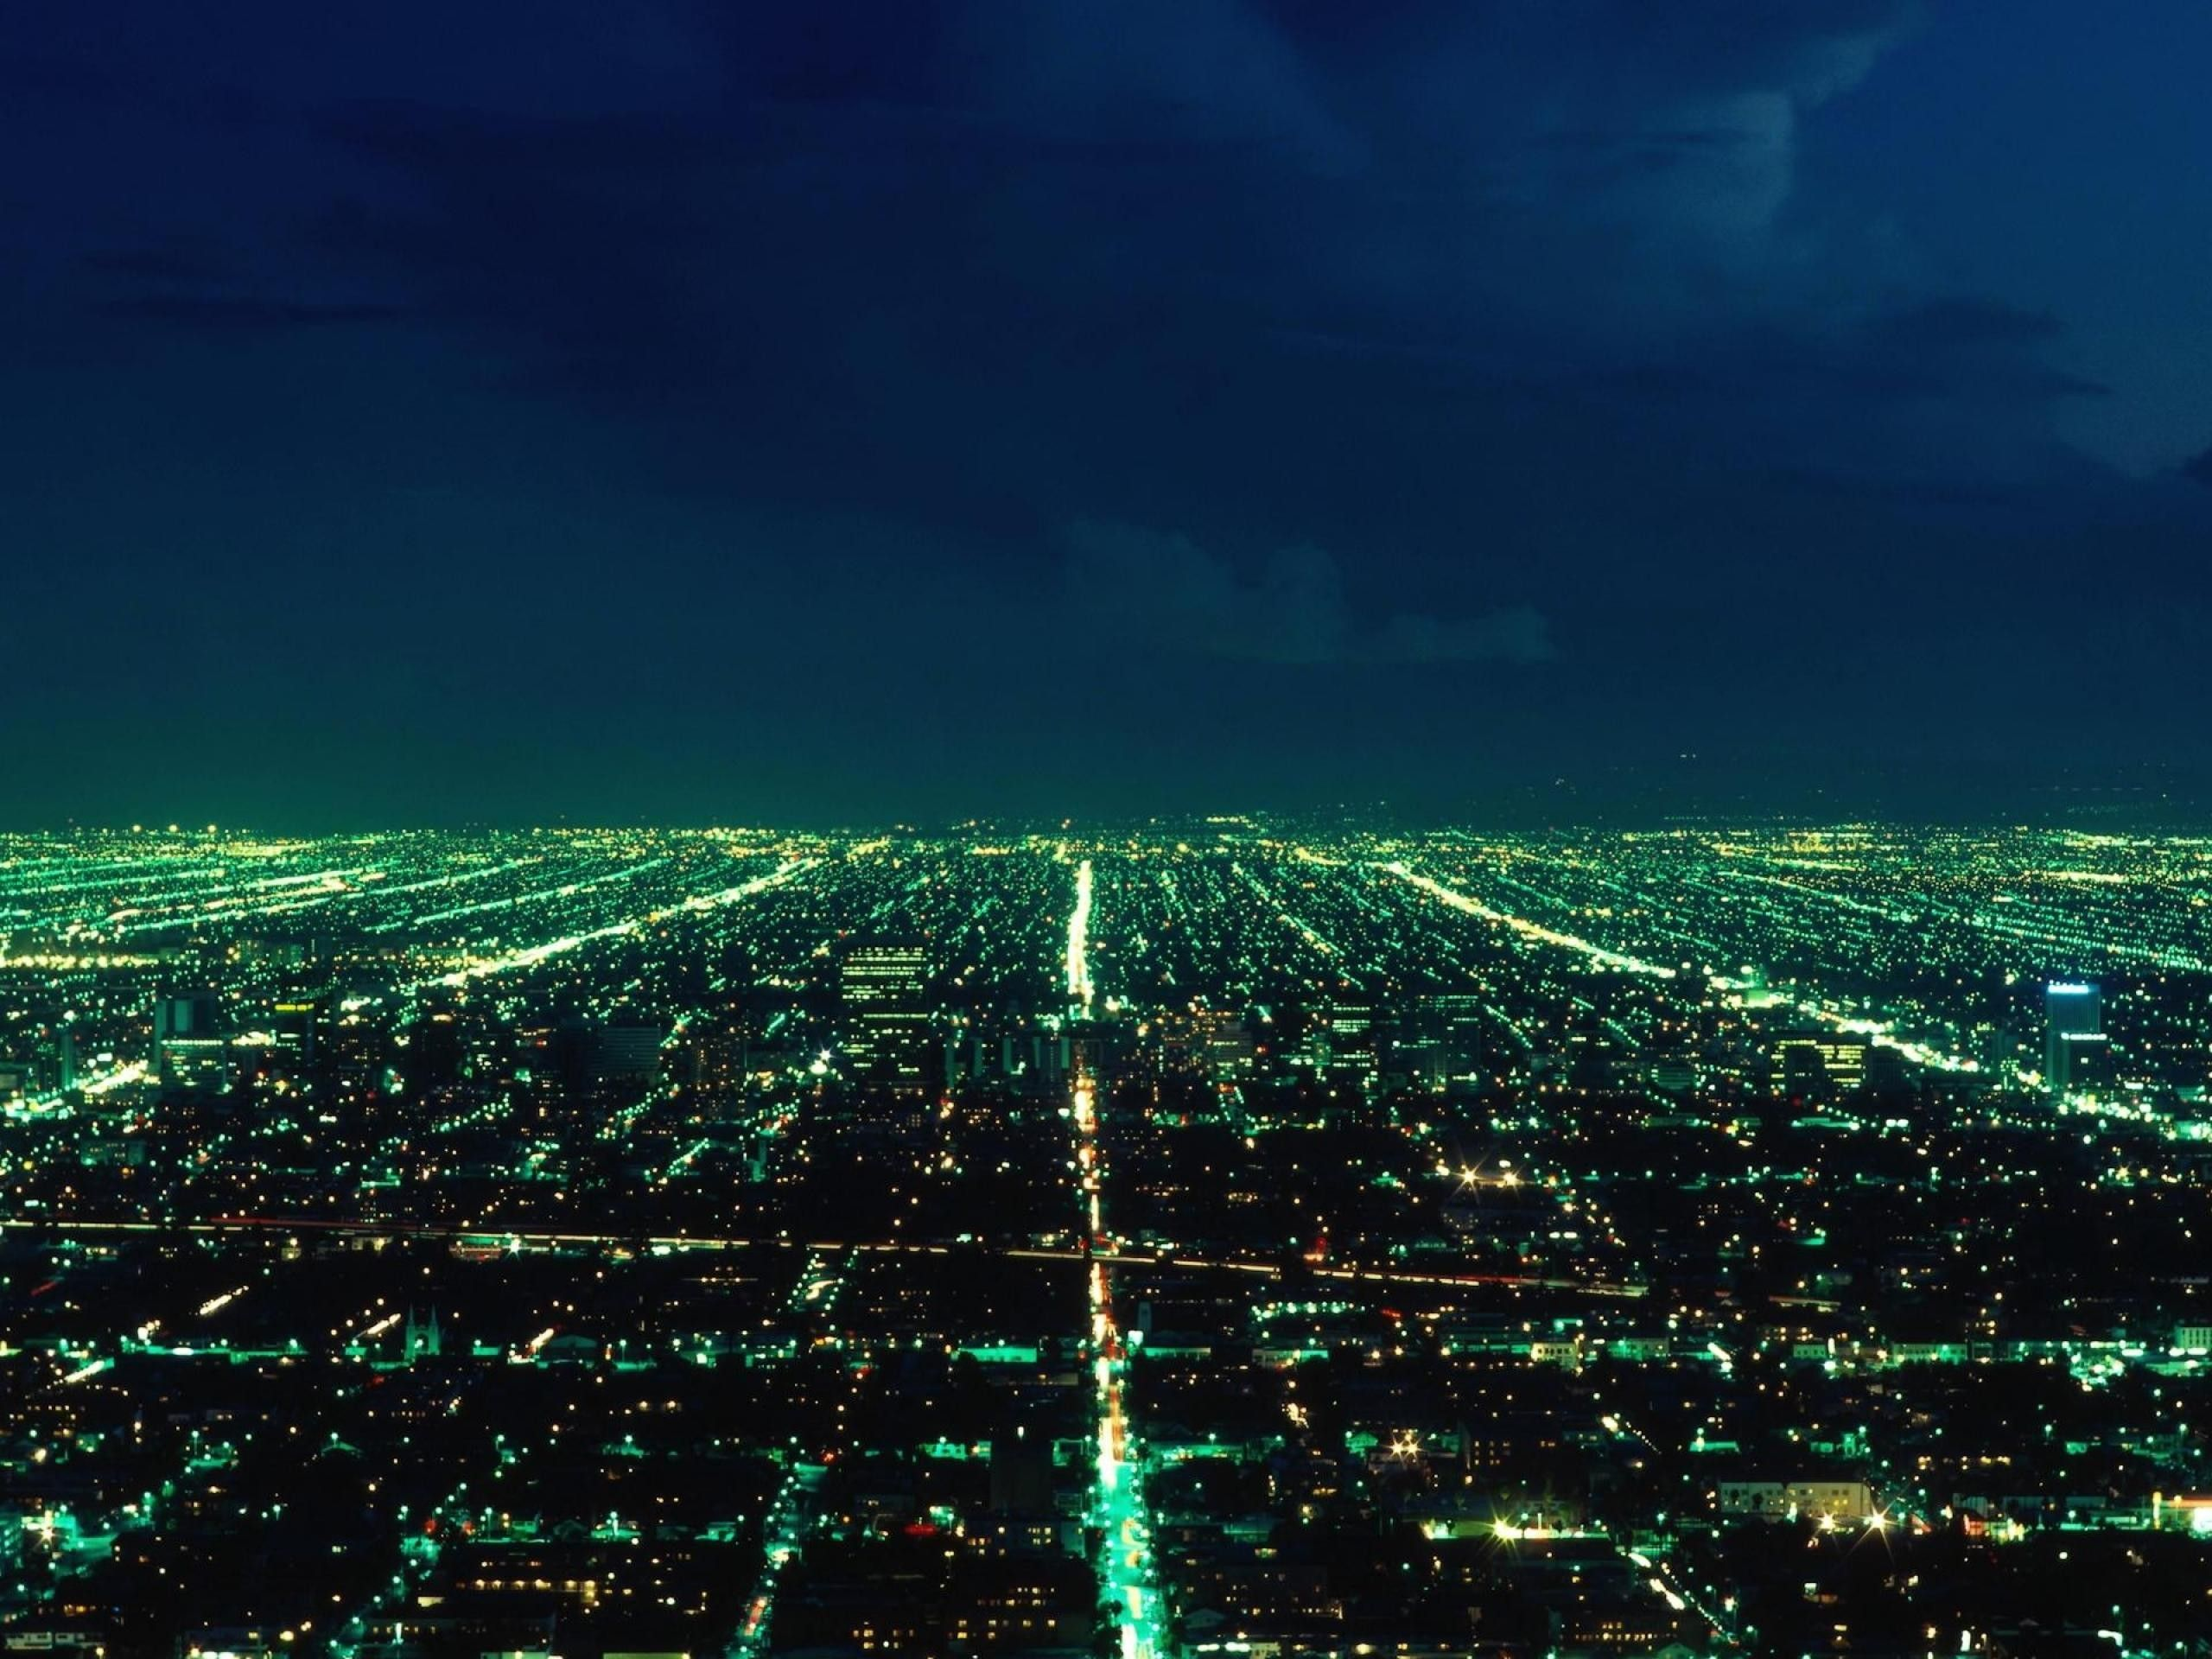 City Skyline At Night Wallpapers City Skyline At Night Urban Landscape Photography City Wallpaper